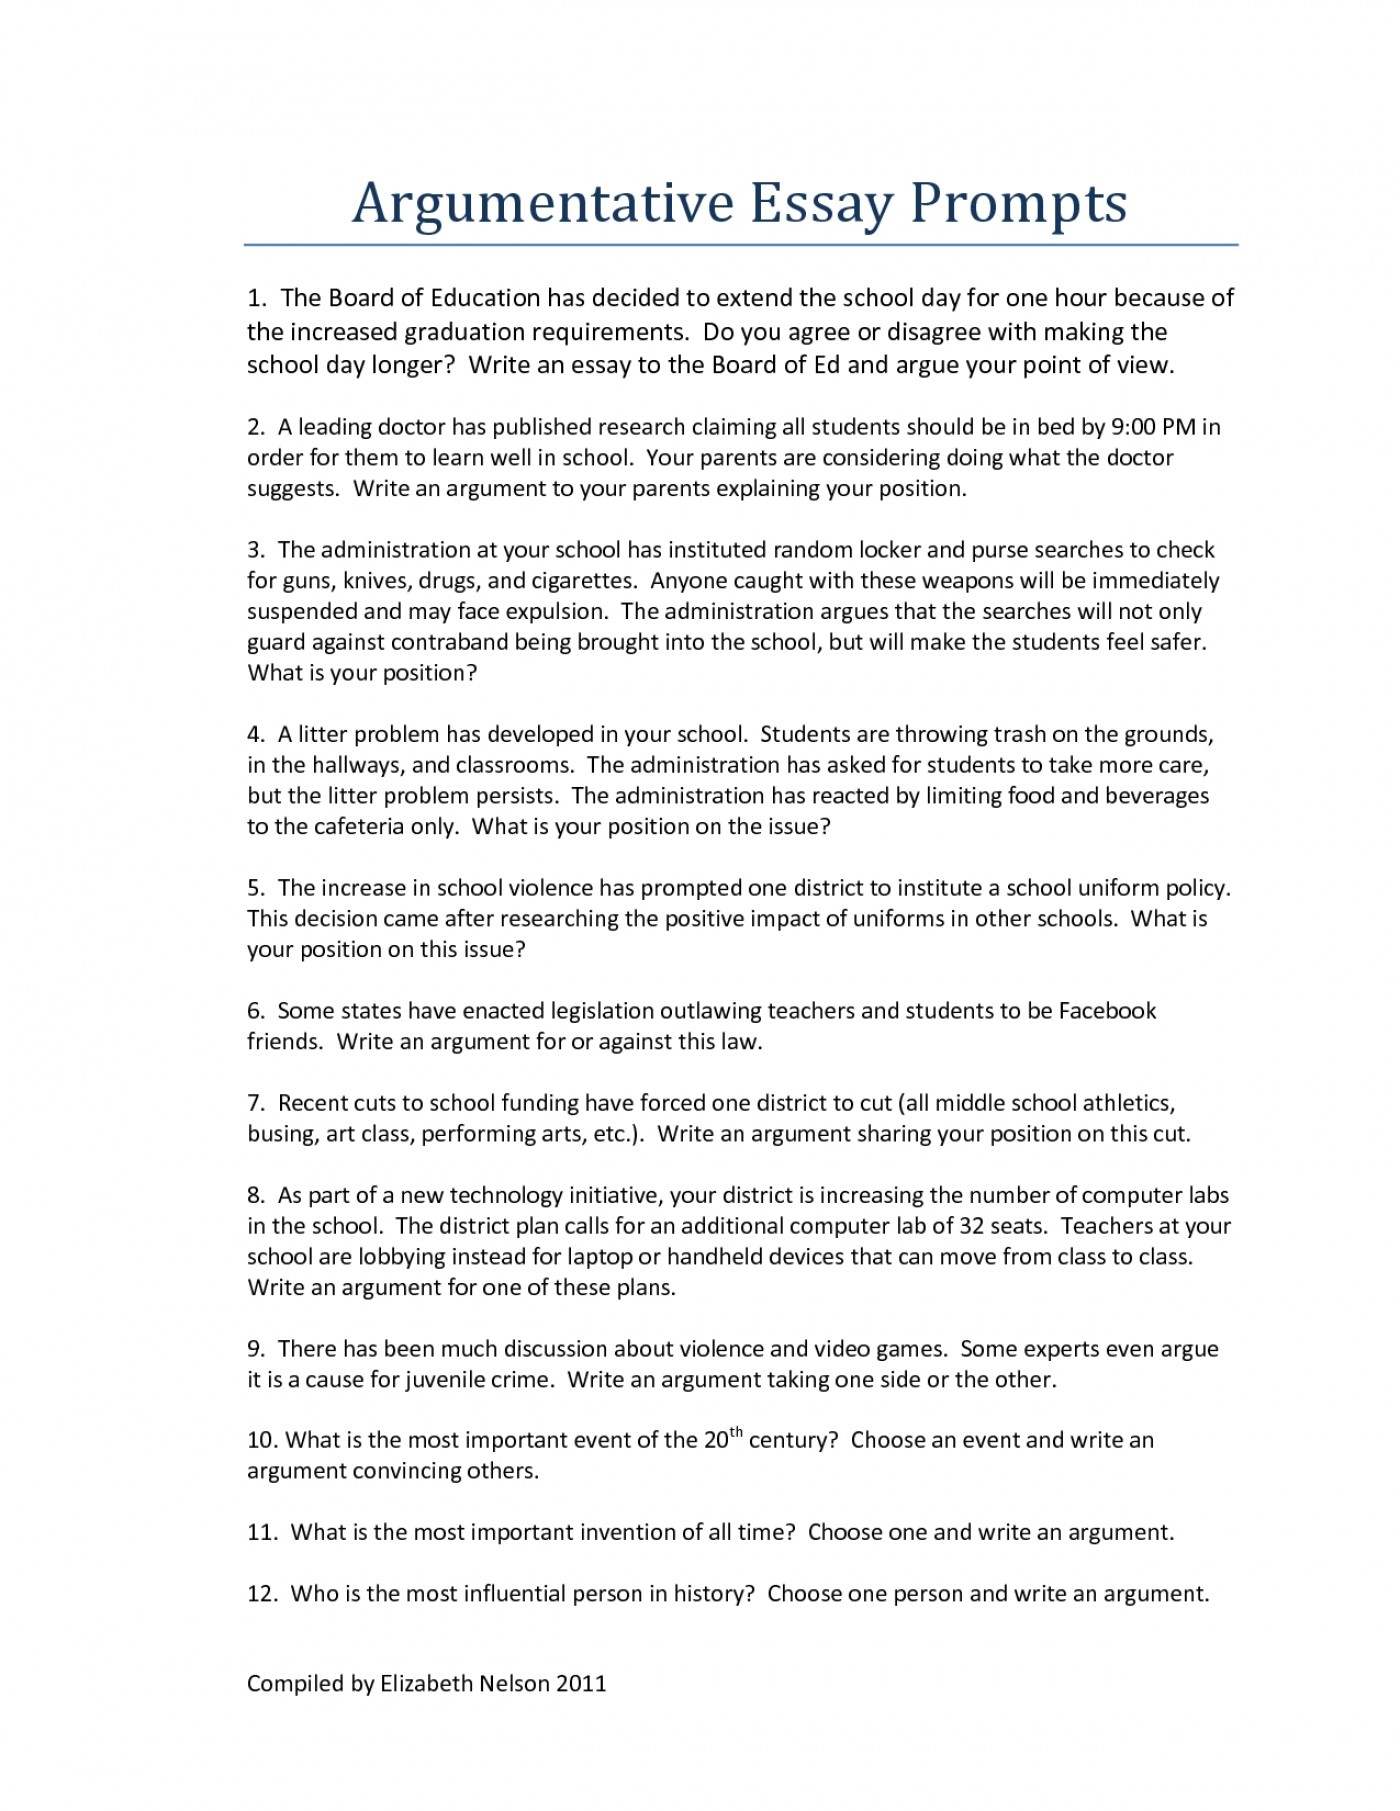 003 Essays For Middle School Argumentative Essay Topics Writings And Informative Good Persuasive High Argument W To Write About List Science Paper Expository Shocking Writing Leadership Students 1400